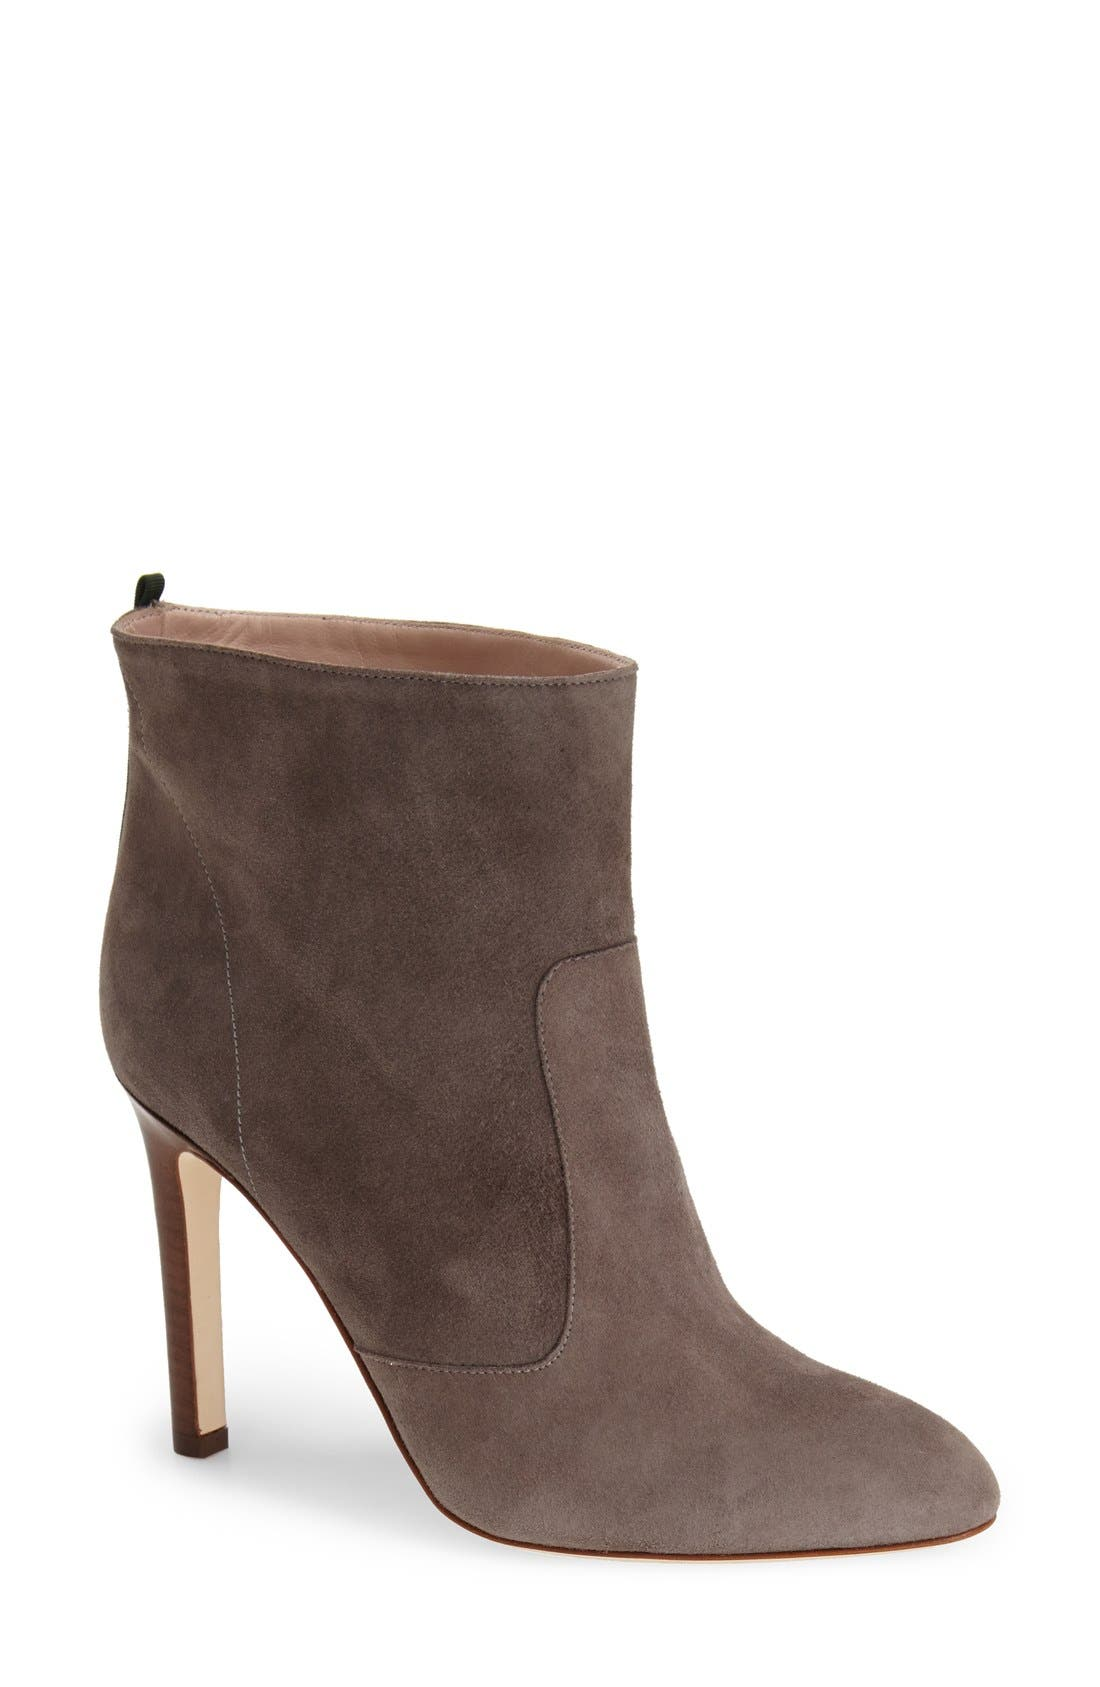 Alternate Image 1 Selected - SJP by Sarah Jessica Parker 'Iana' Bootie (Women)